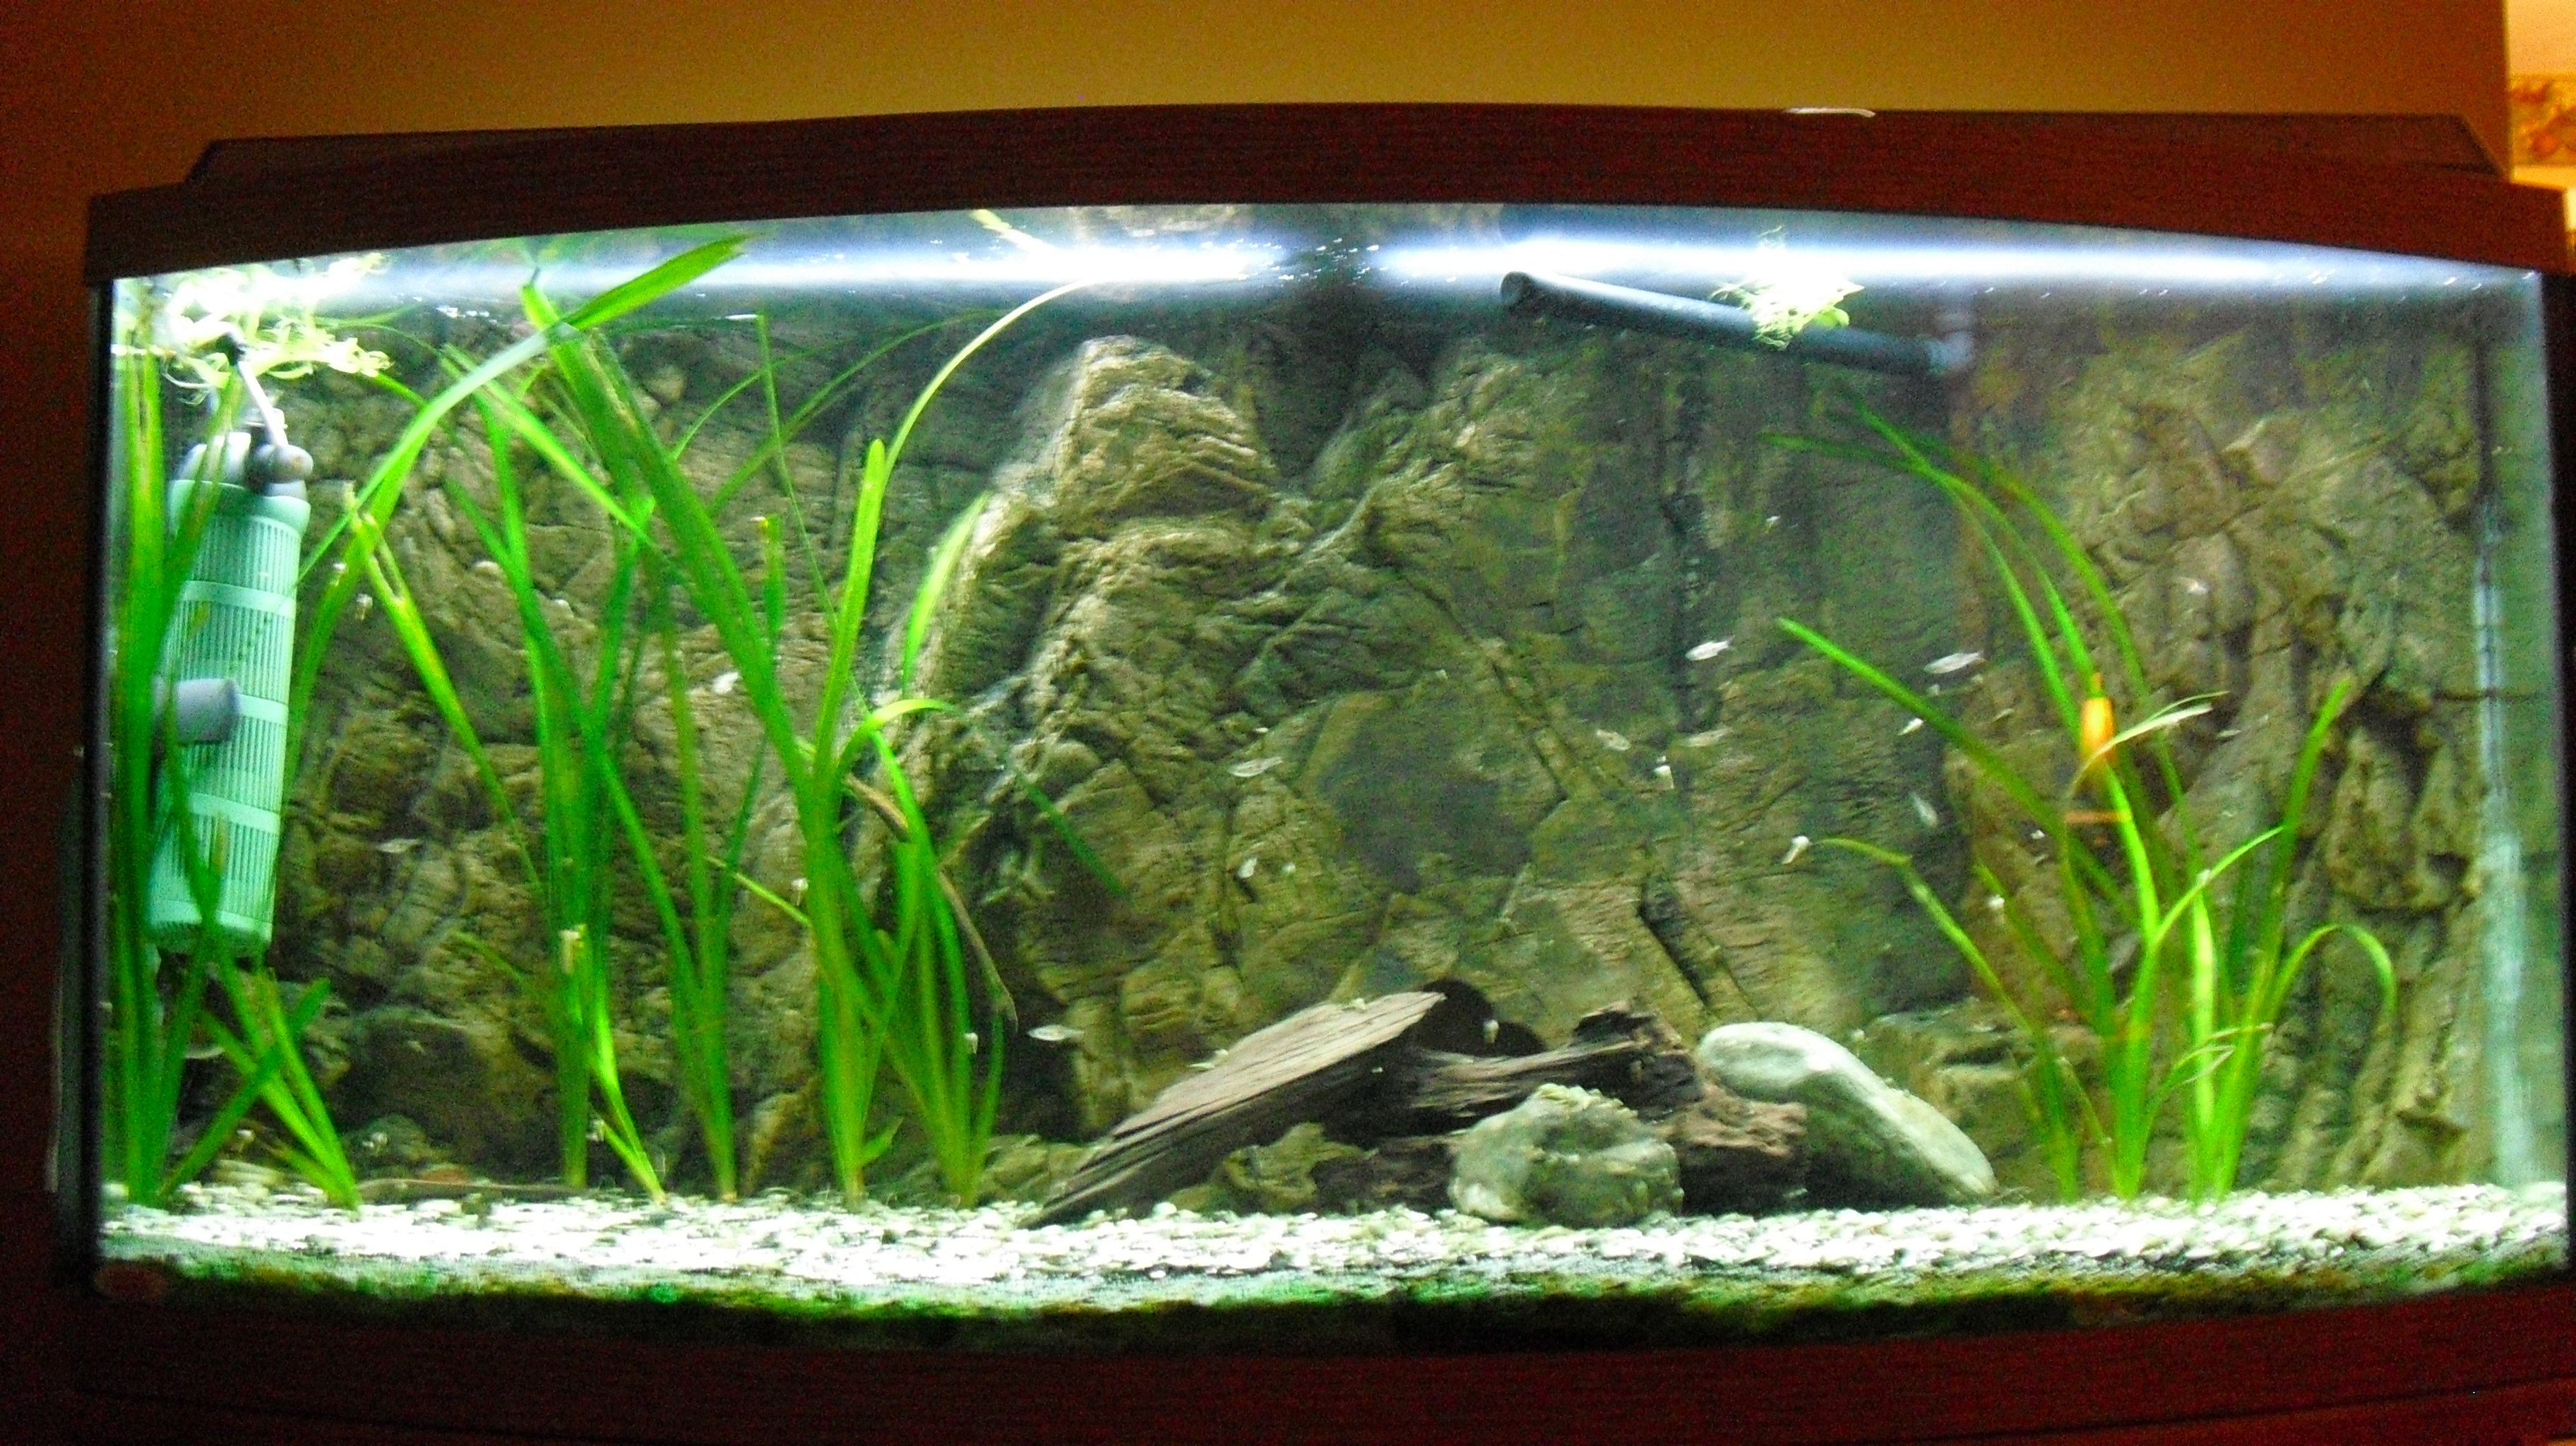 Empty fish tank - photo#11